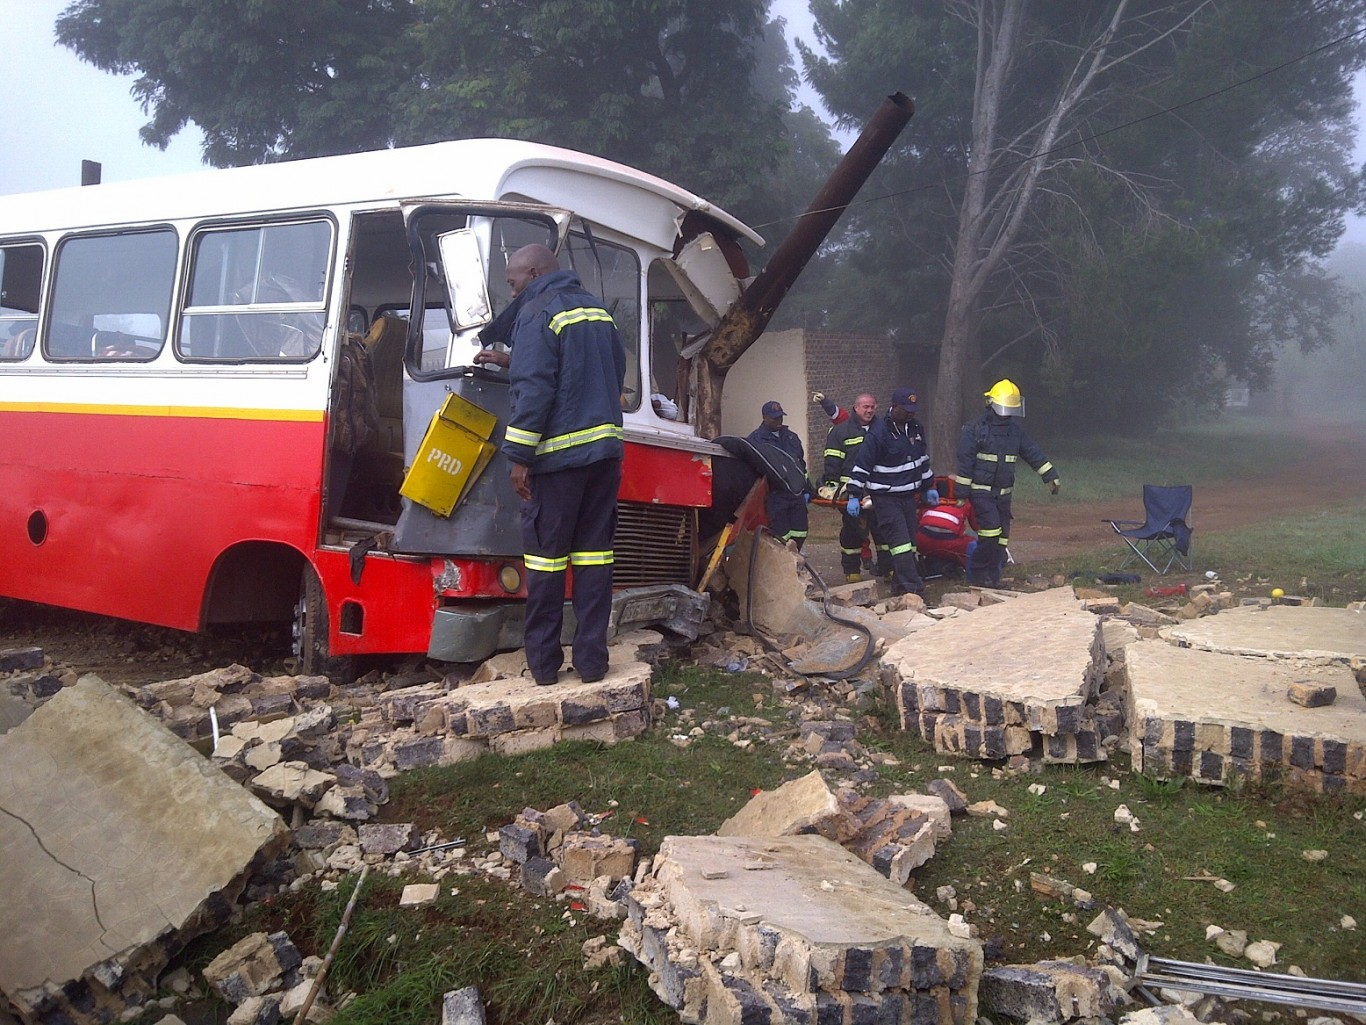 Kpn bus accident photos Behind the Scenes on a